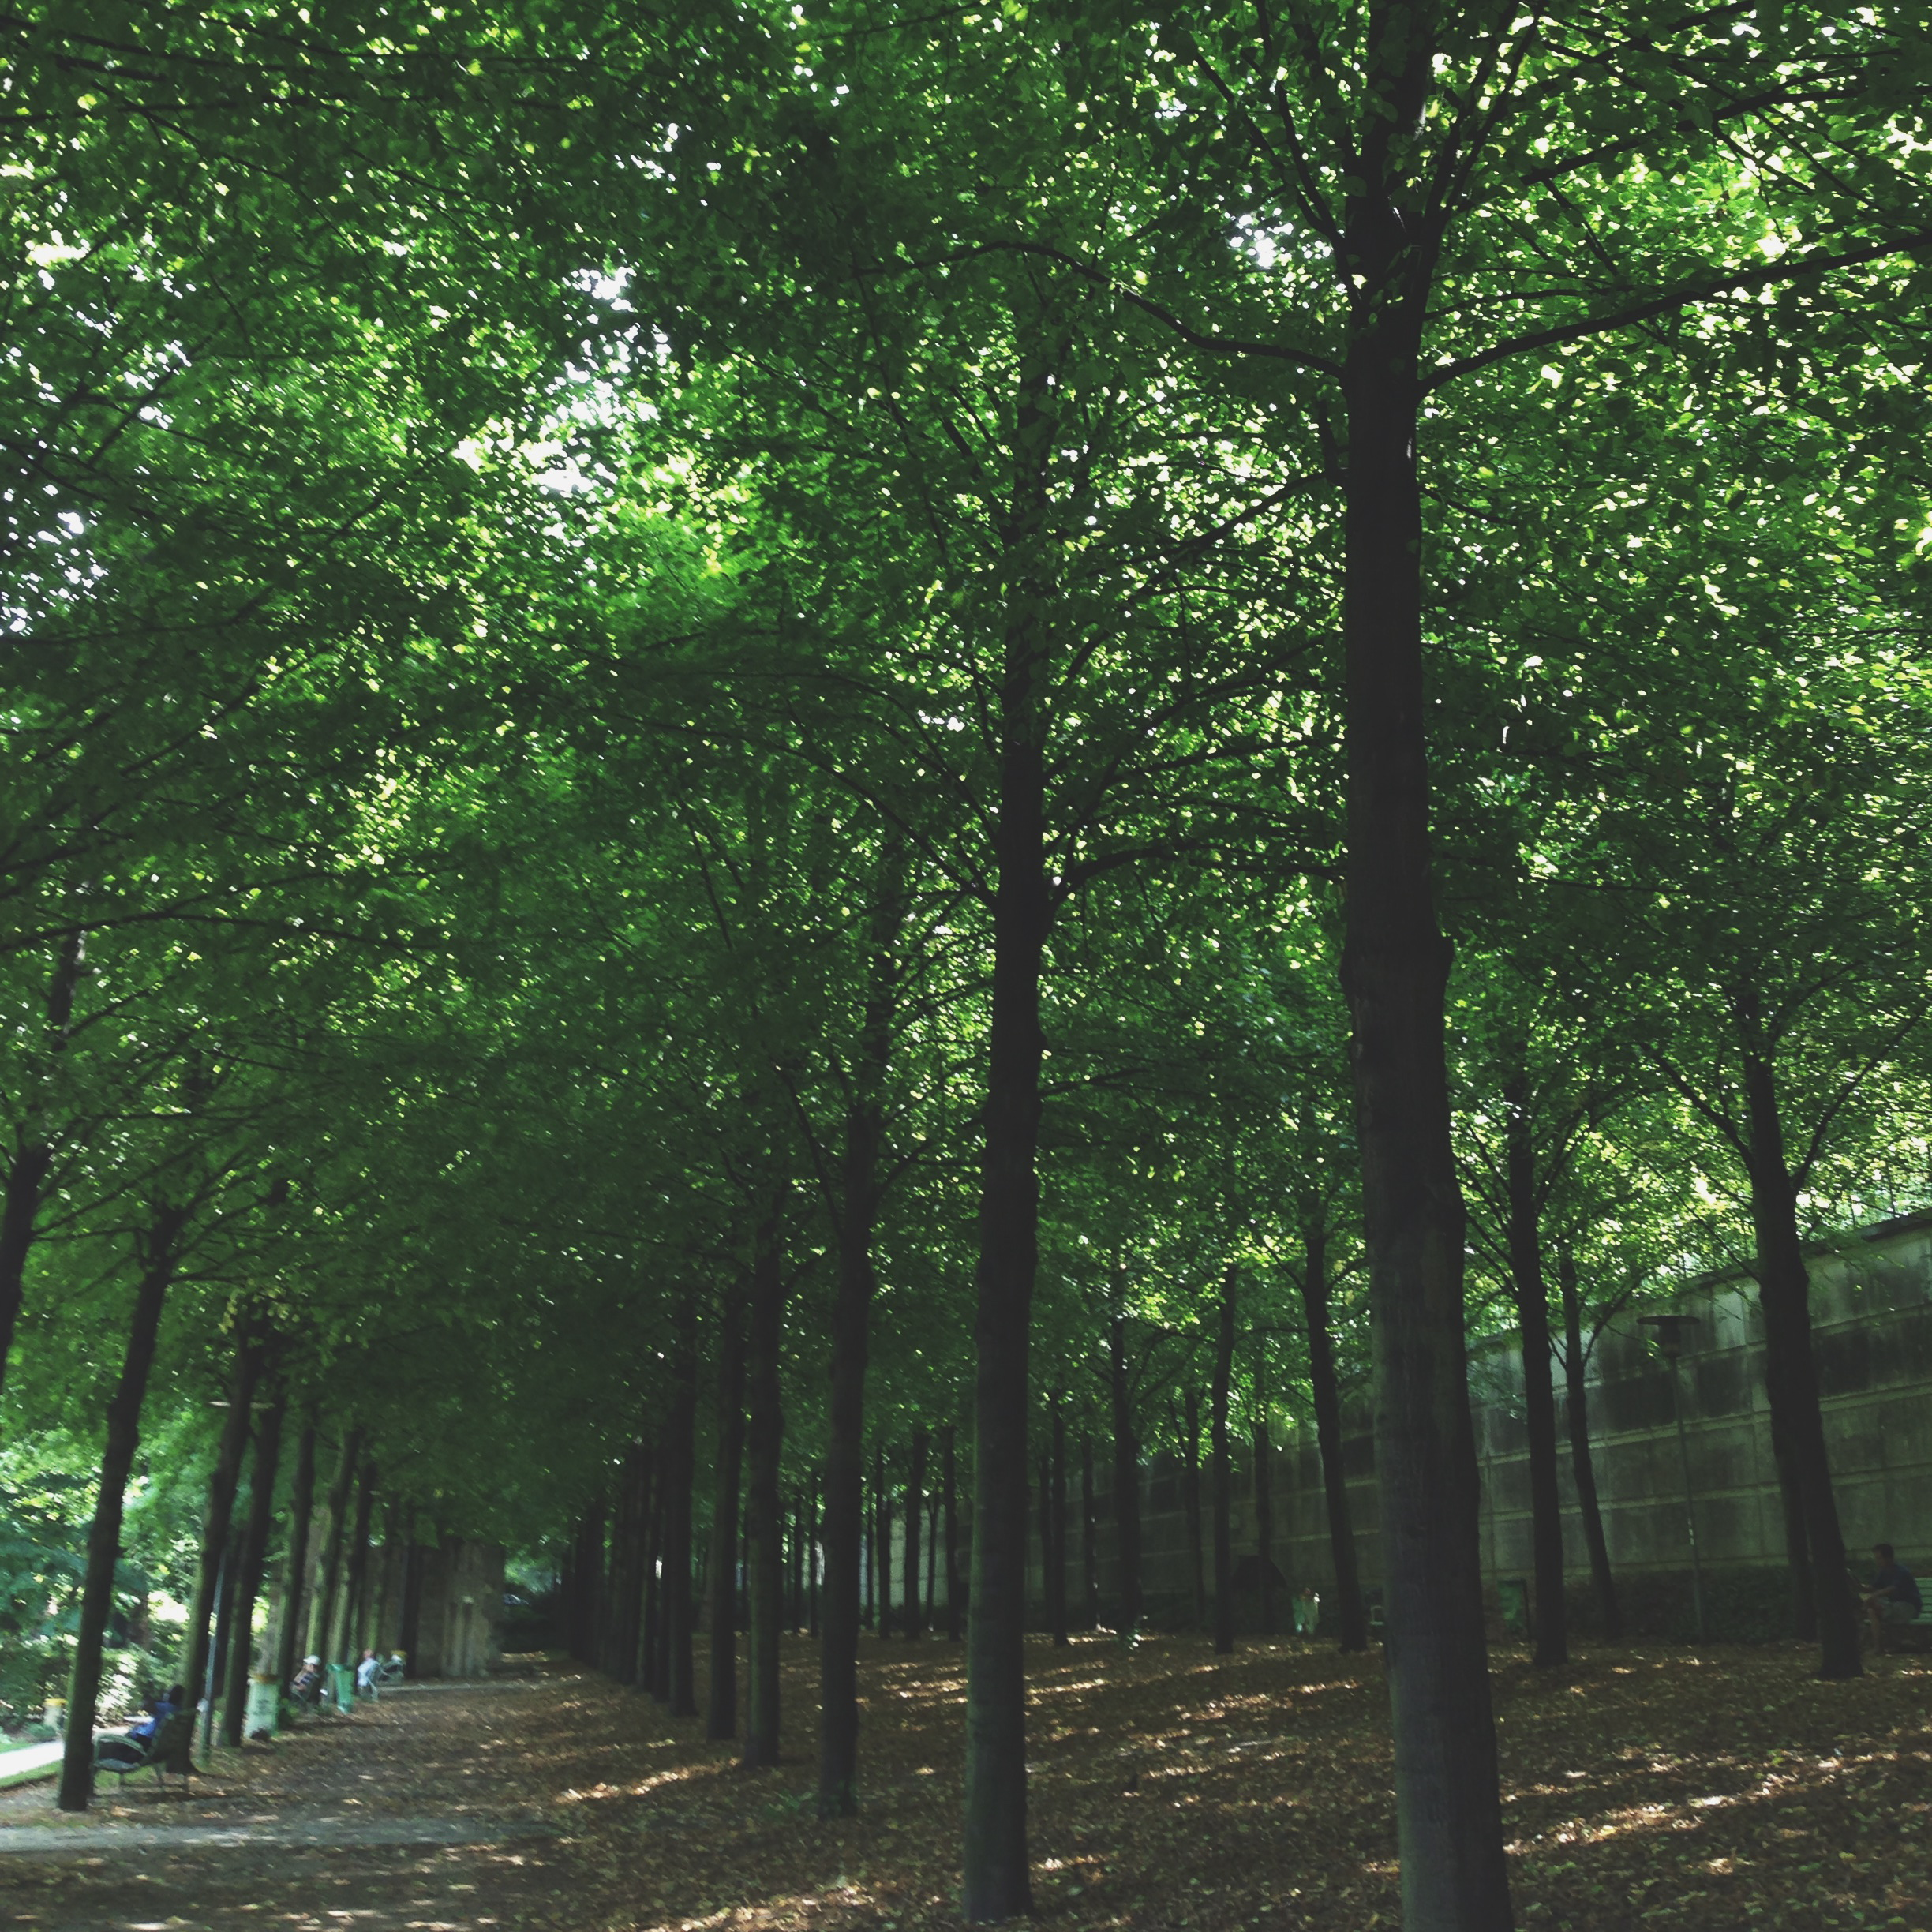 Actually looking for the shade in Parc de Bercy